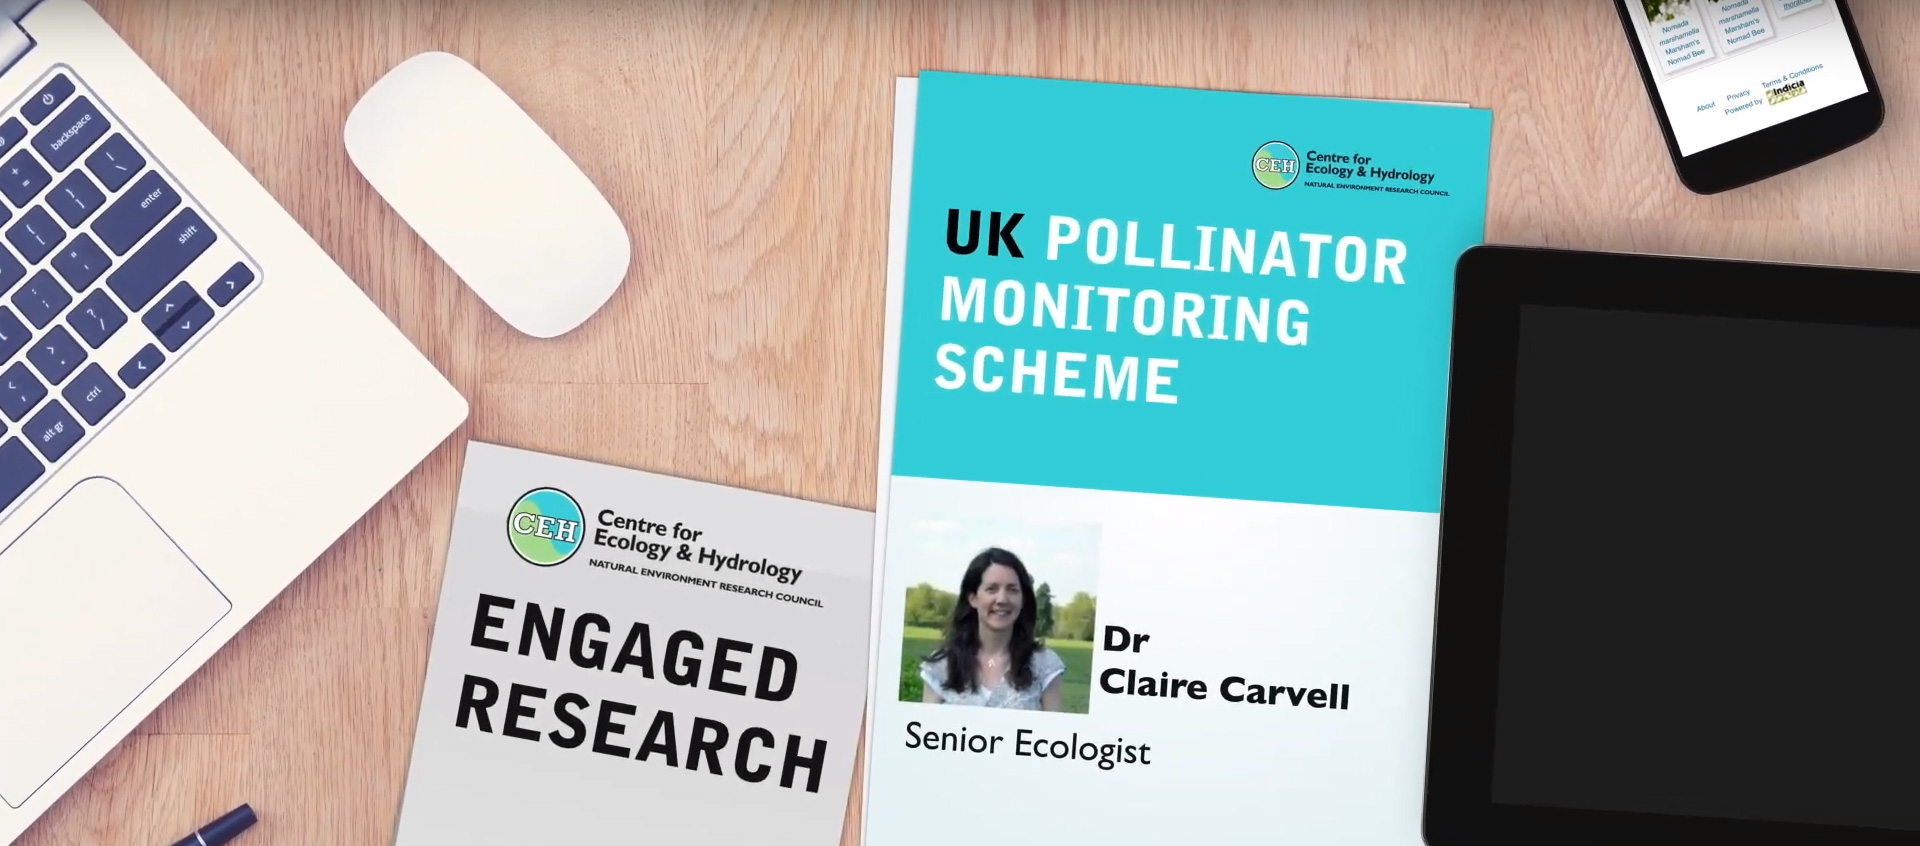 UK Pollinator Monitoring Scheme